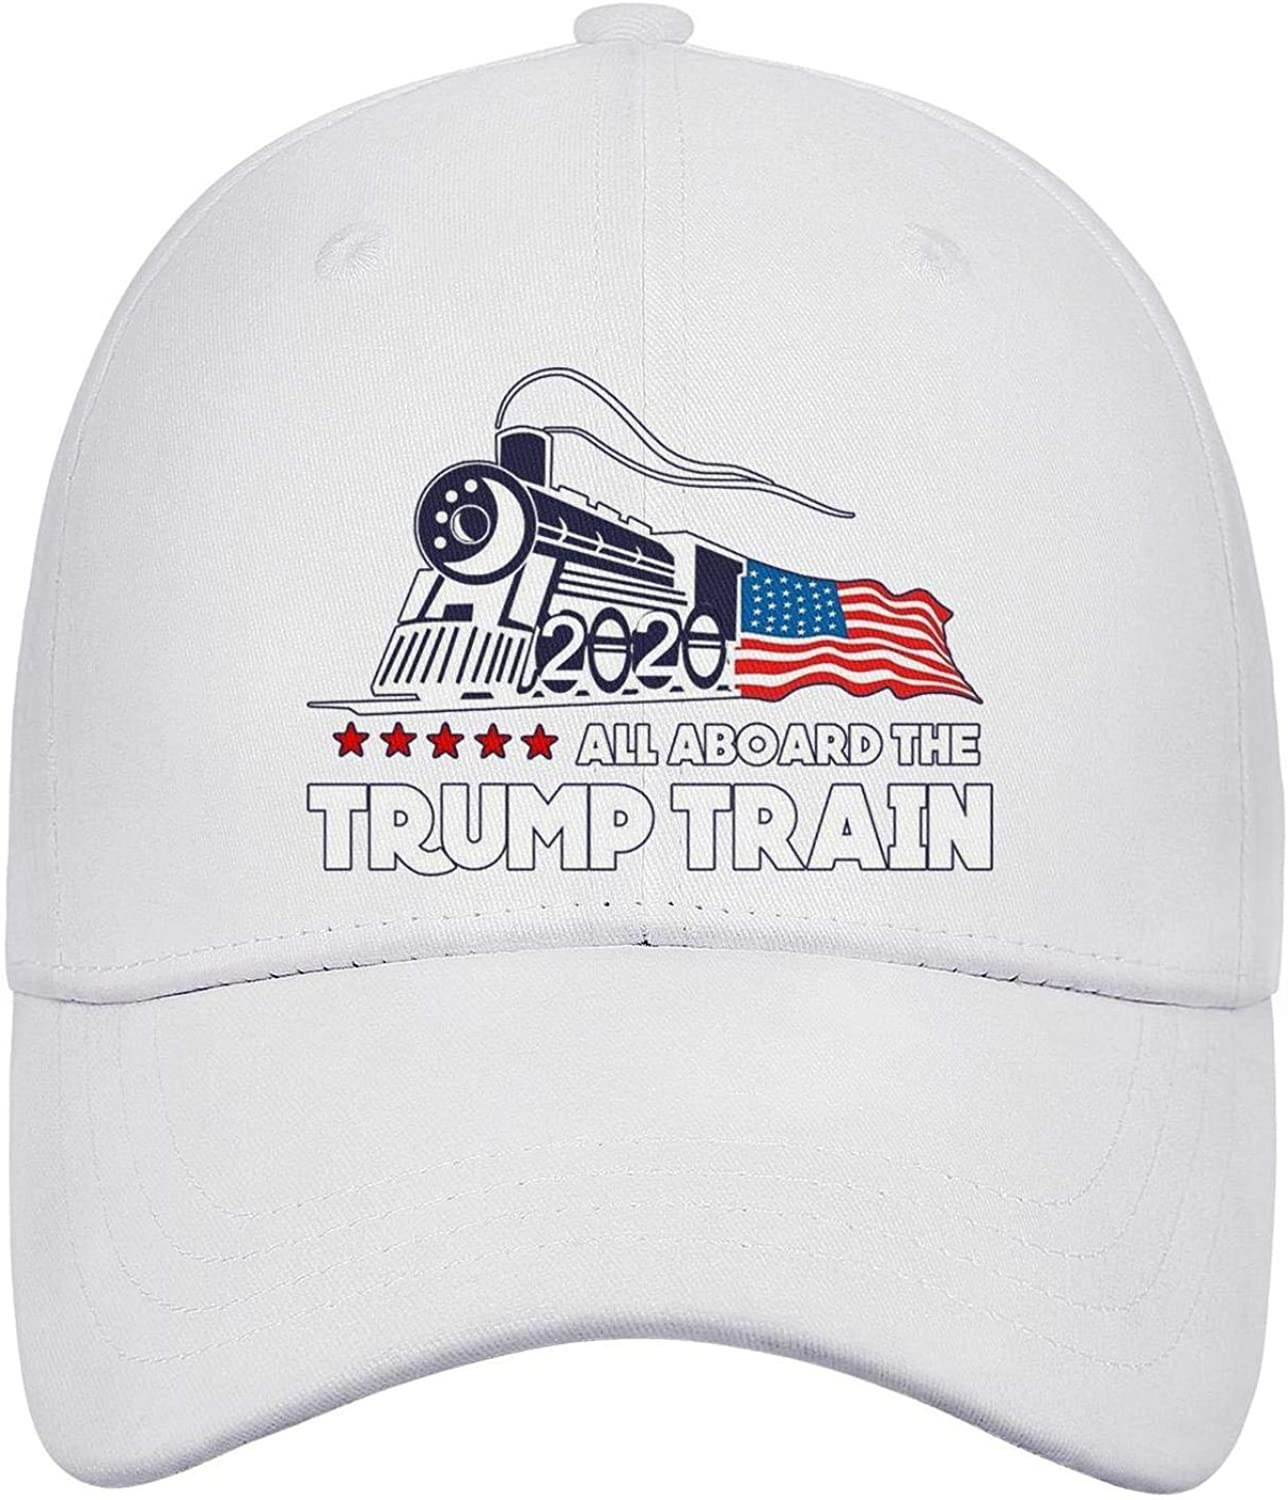 Trump 2020 American Flag Unisex Baseball Cap Cooling Running Caps Adjustable Trucker Caps Dad-Hat